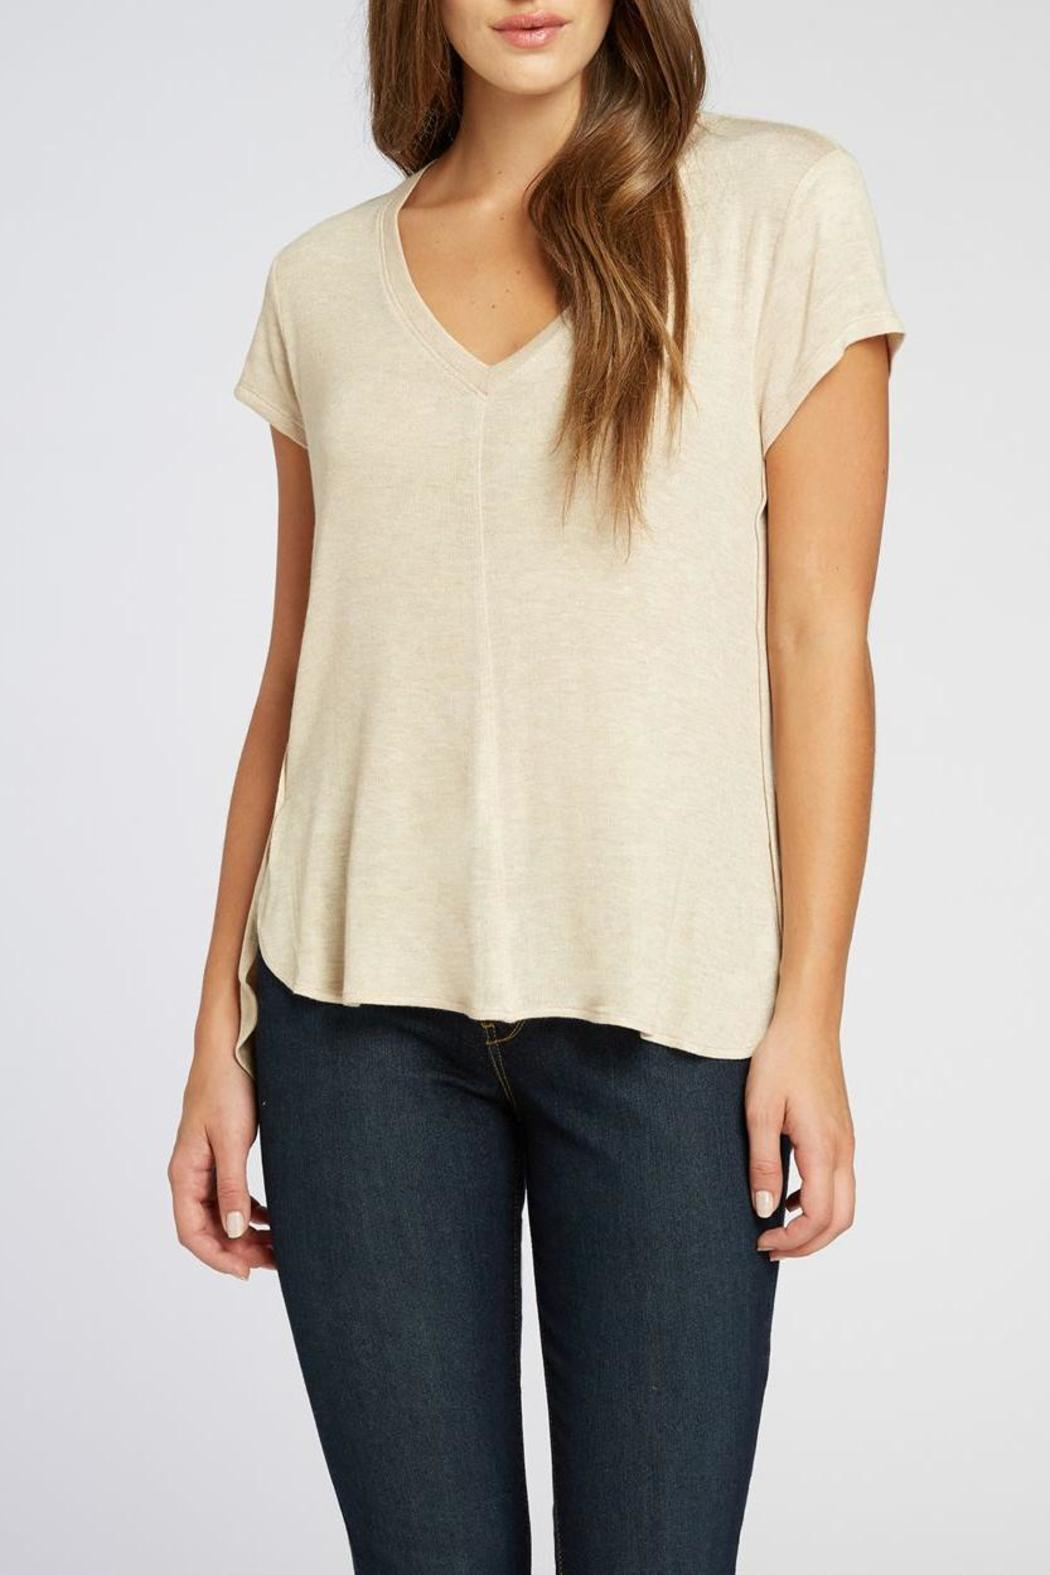 The Dressing Room V-neck Hi-Low Tee - Main Image